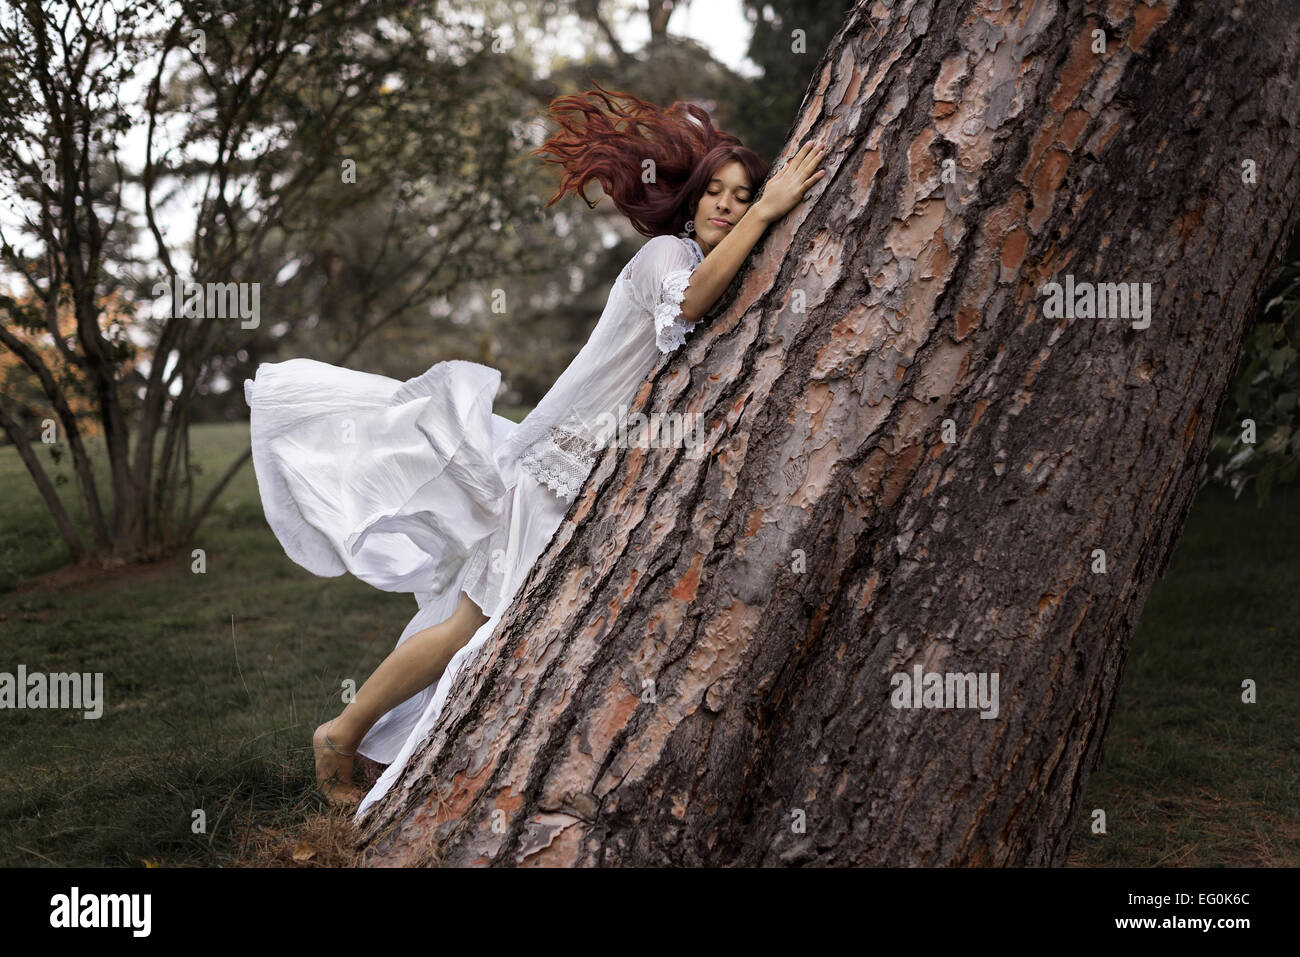 Young woman embracing tree - Stock Image